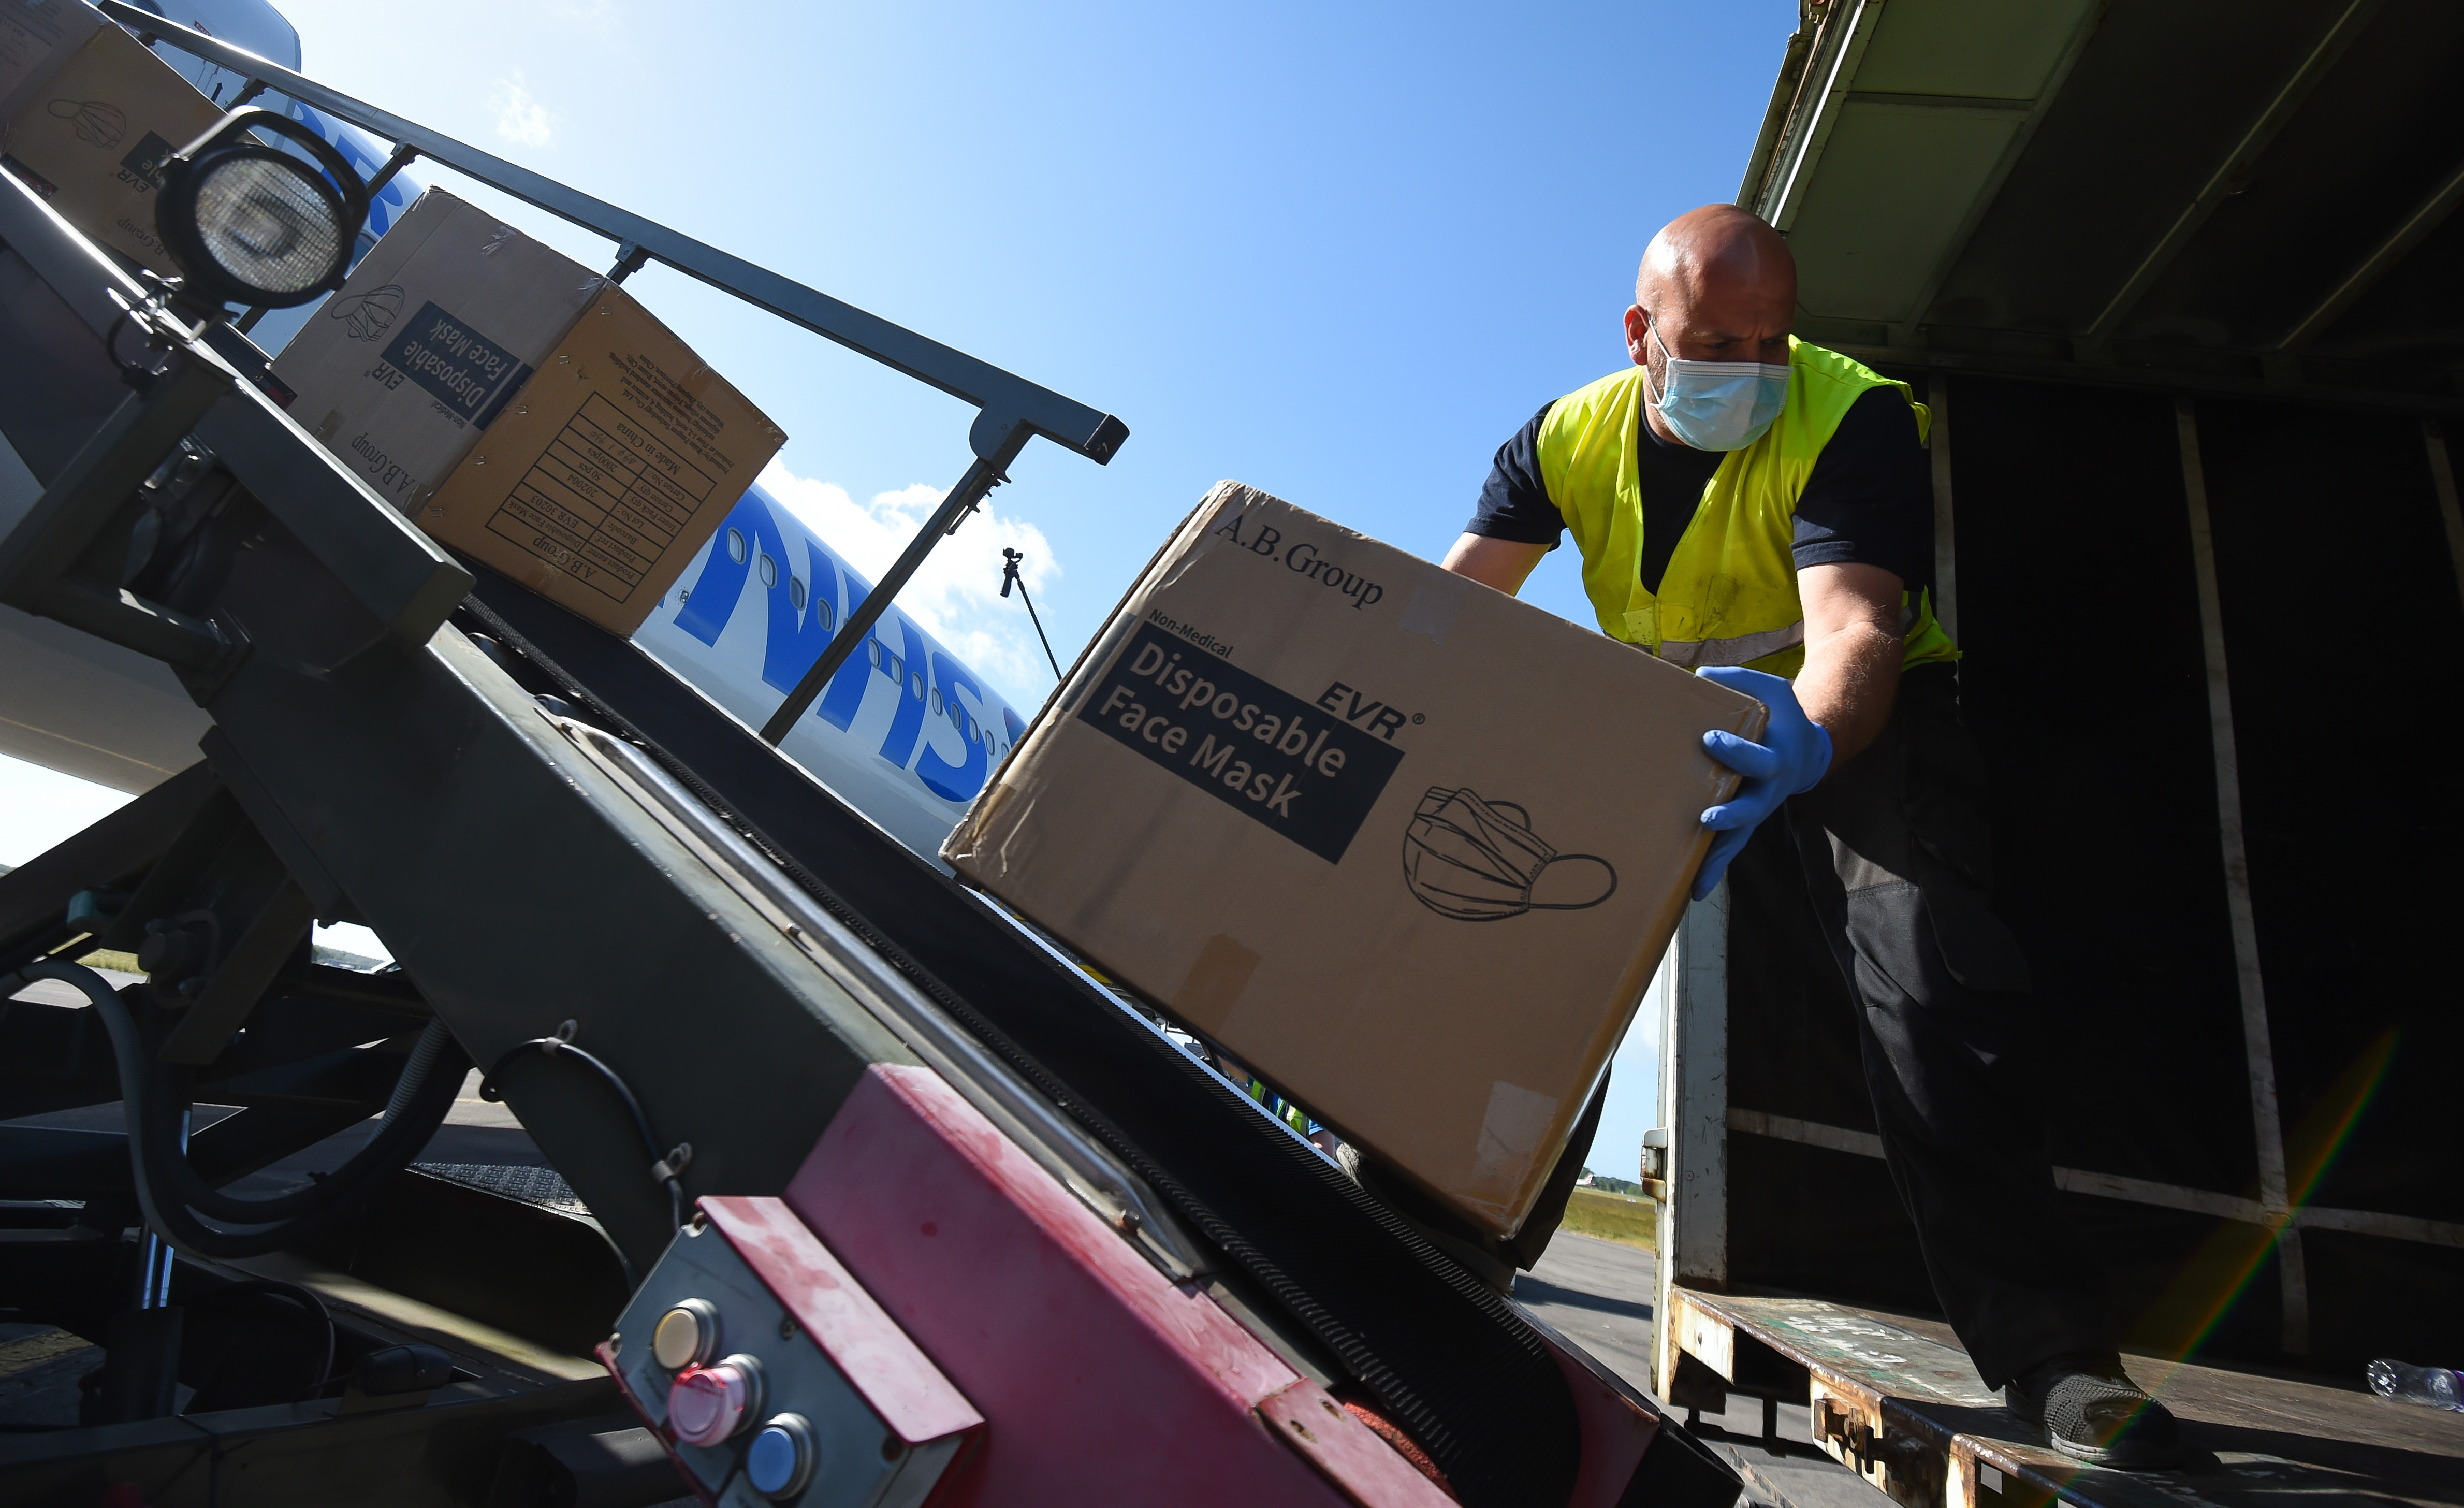 MAY 23: Boxes containing face masks are unloaded from a plane on May 23, 2020 in Bournemouth, England. The Airbus A340, owned by European Aviation Group, arrived at Bournemouth Airport from Tianjin loaded with 4 million masks.European Aviation Group's Chairman, Paul Stoddart, said: